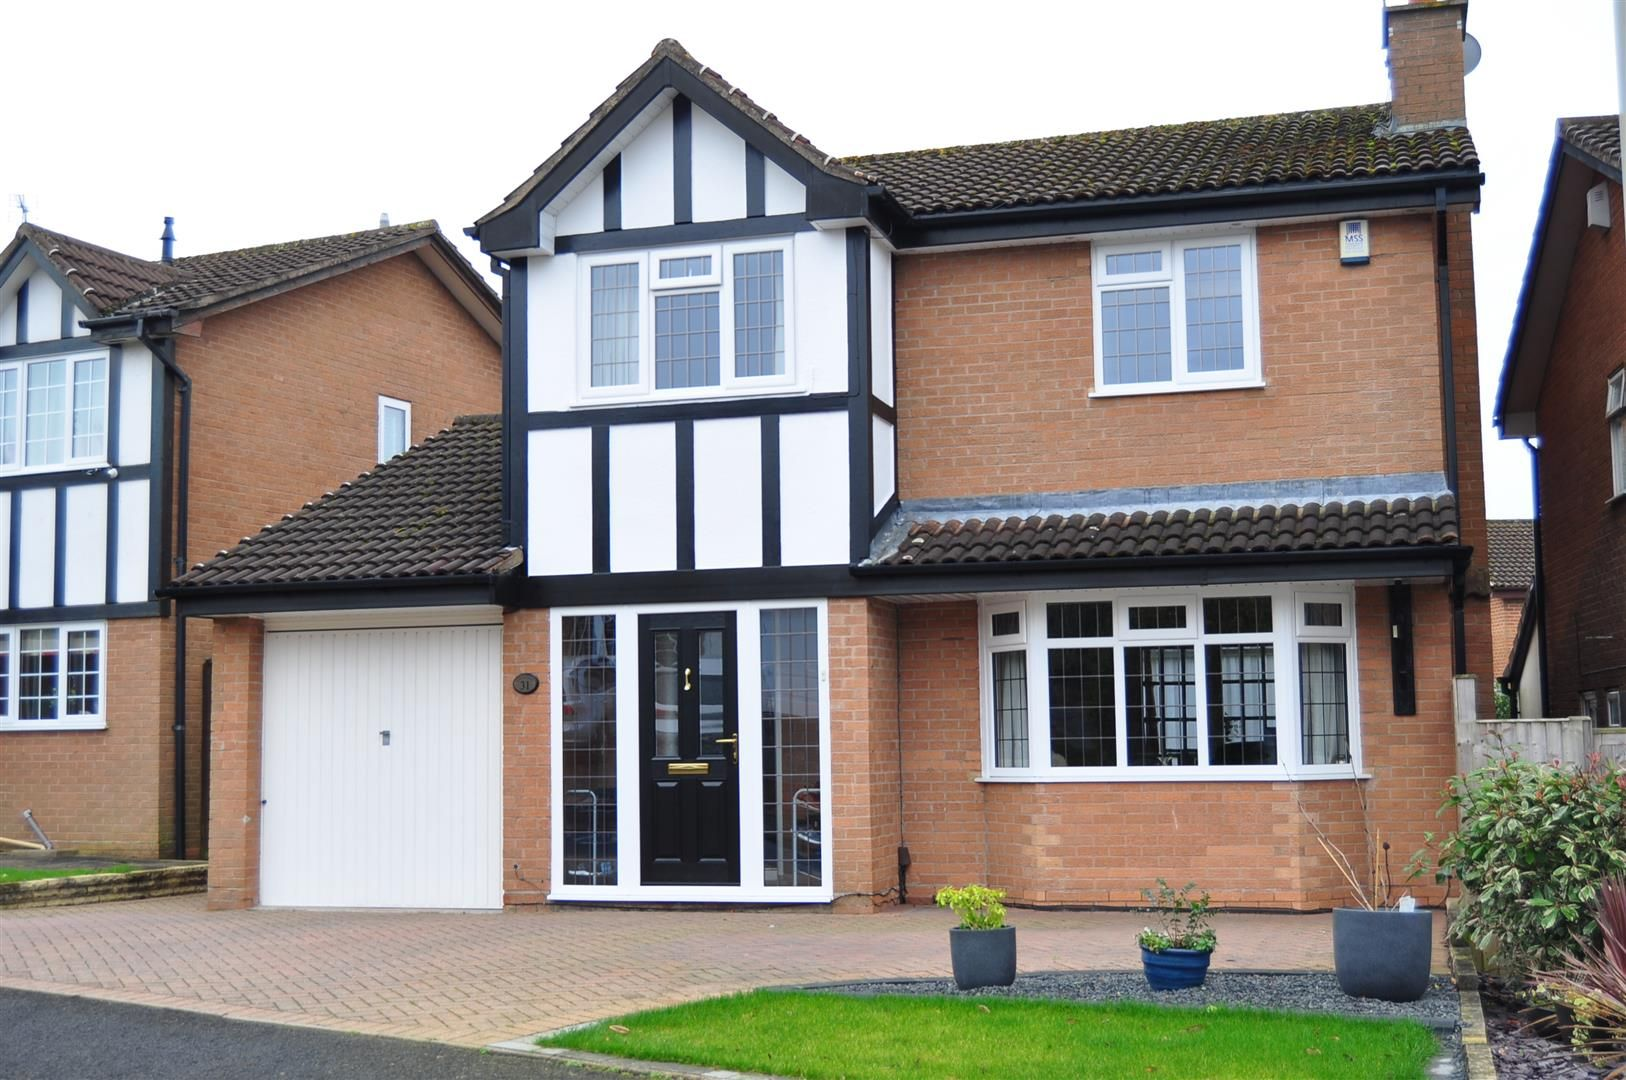 4 bed detached for sale  - Property Image 24